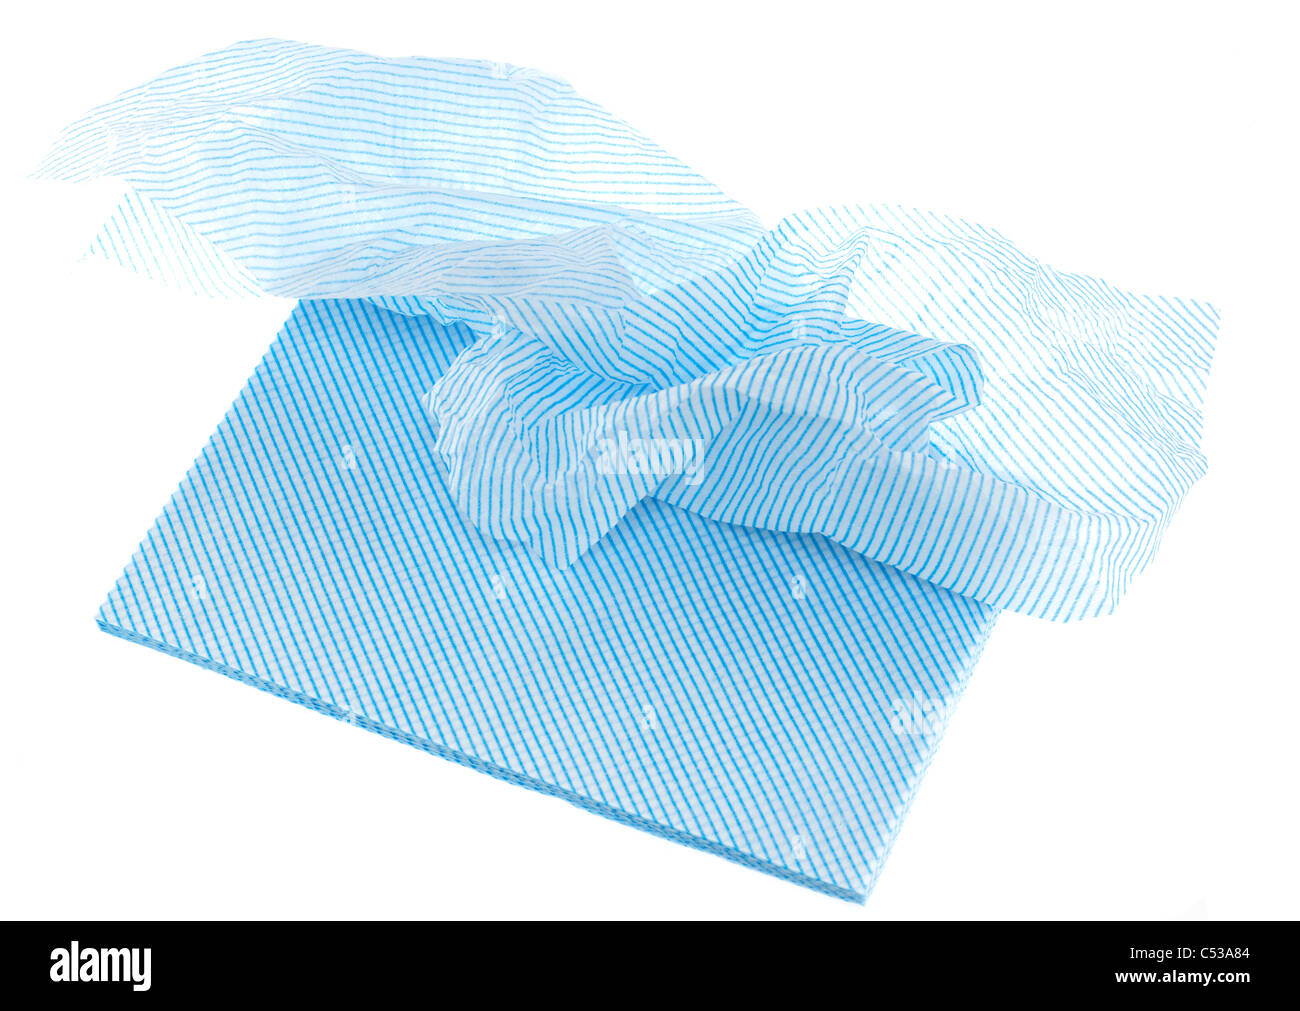 Pile of blue all purpose paper cloths - Stock Image